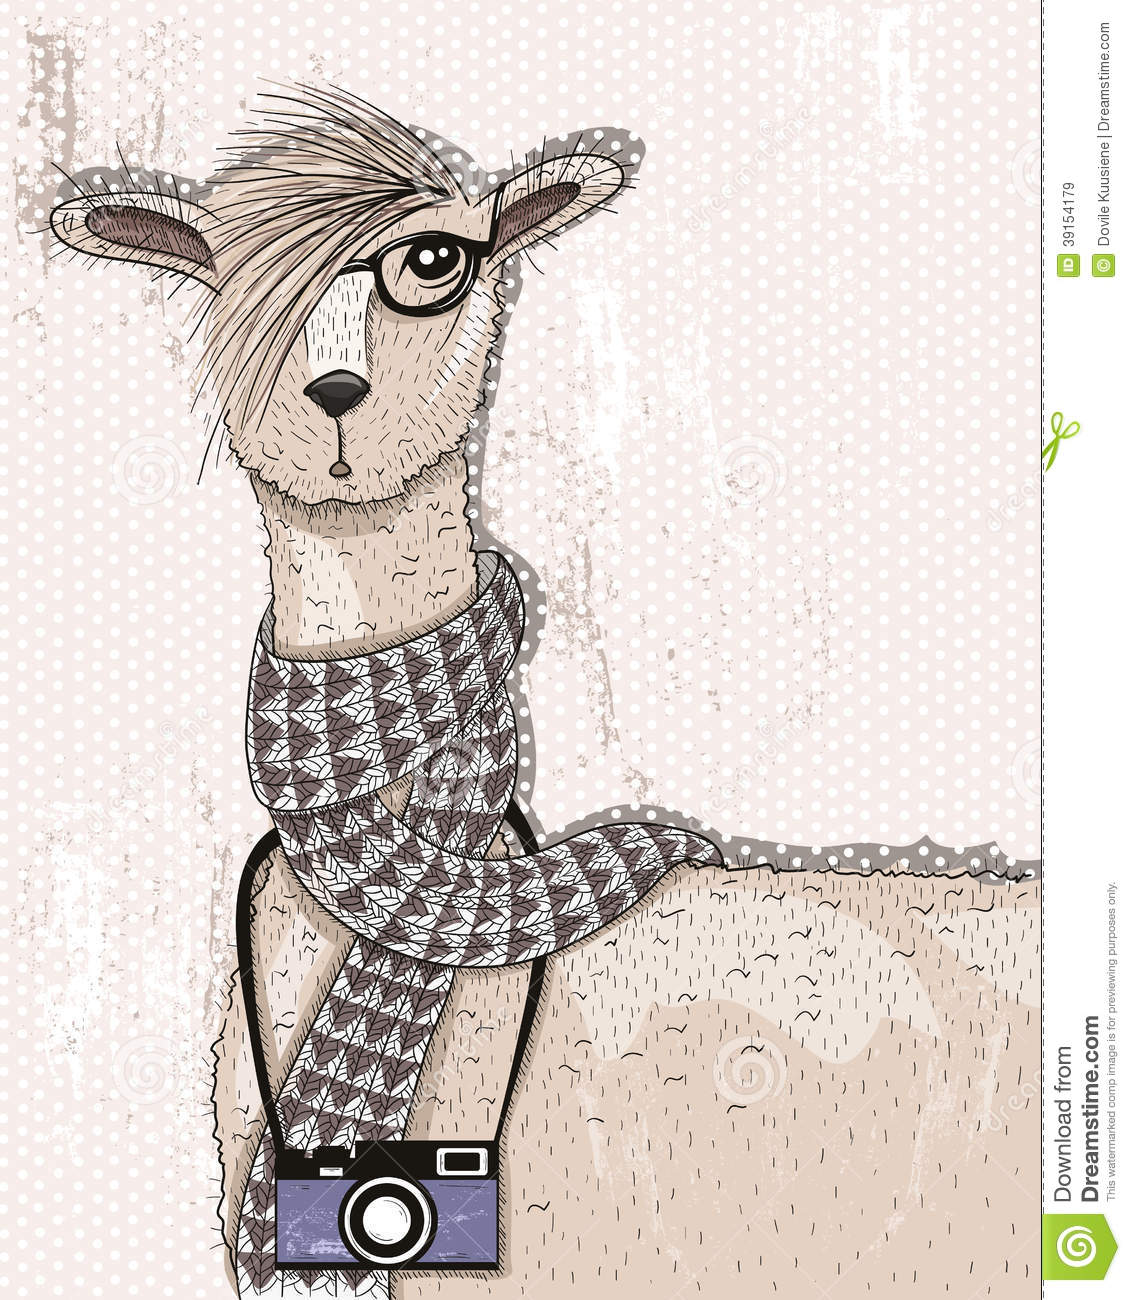 Cute hipster lama with photo camera